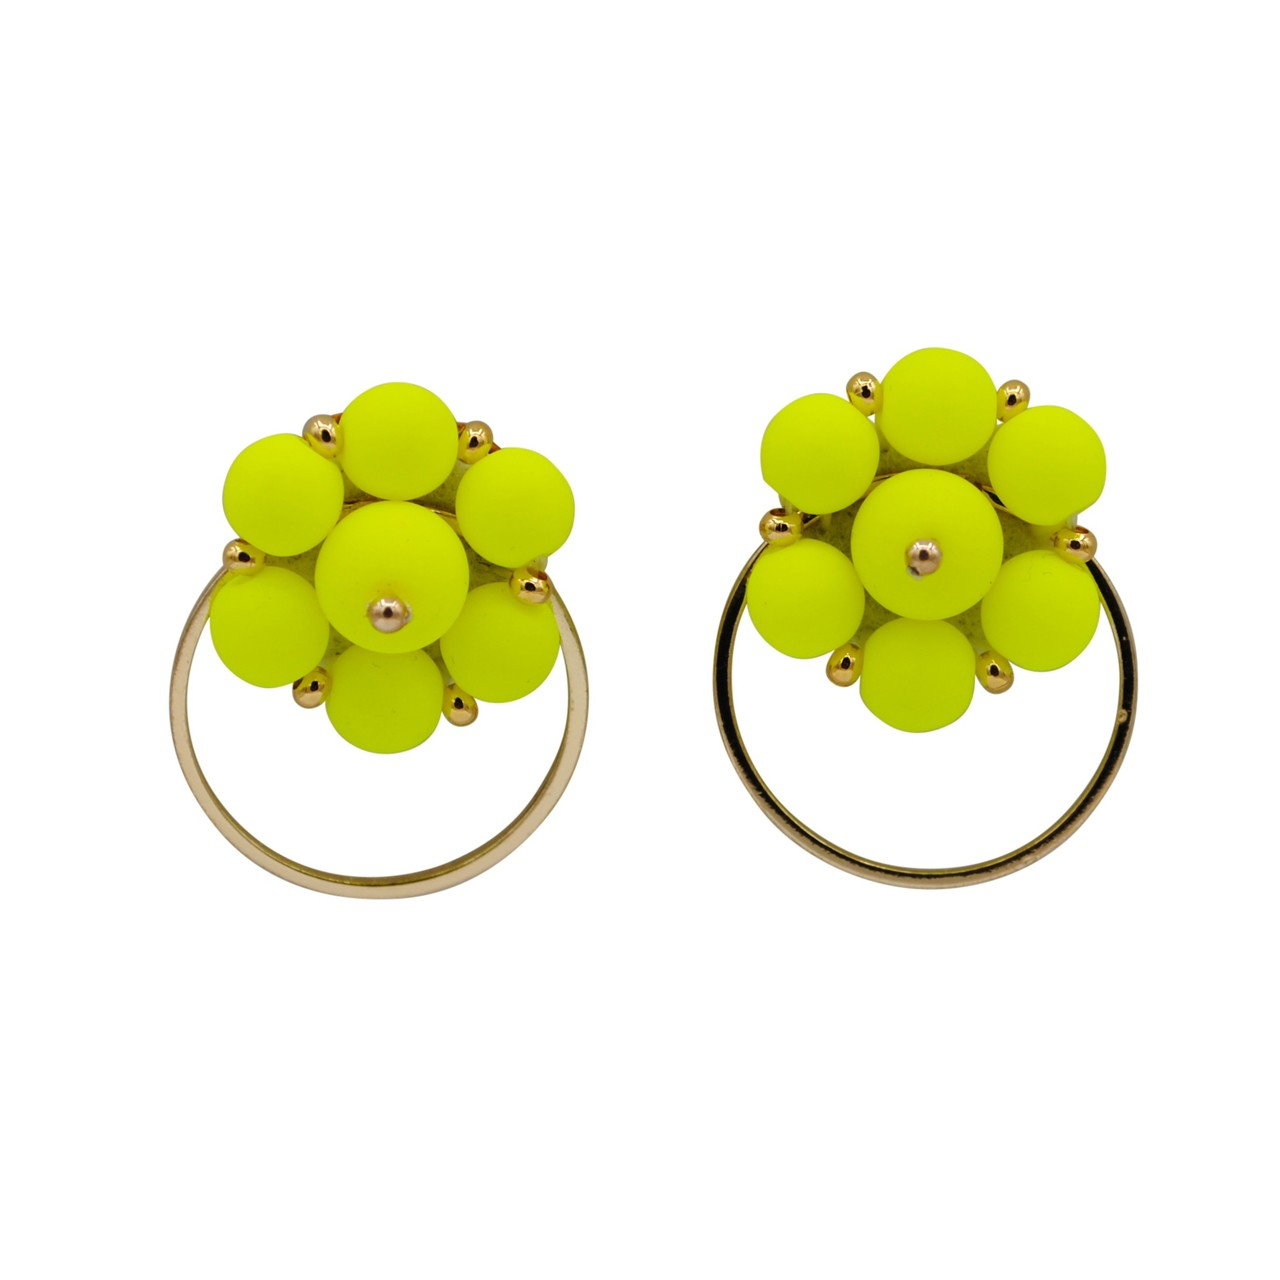 Forever Fiesta Hoop Earrings in Green